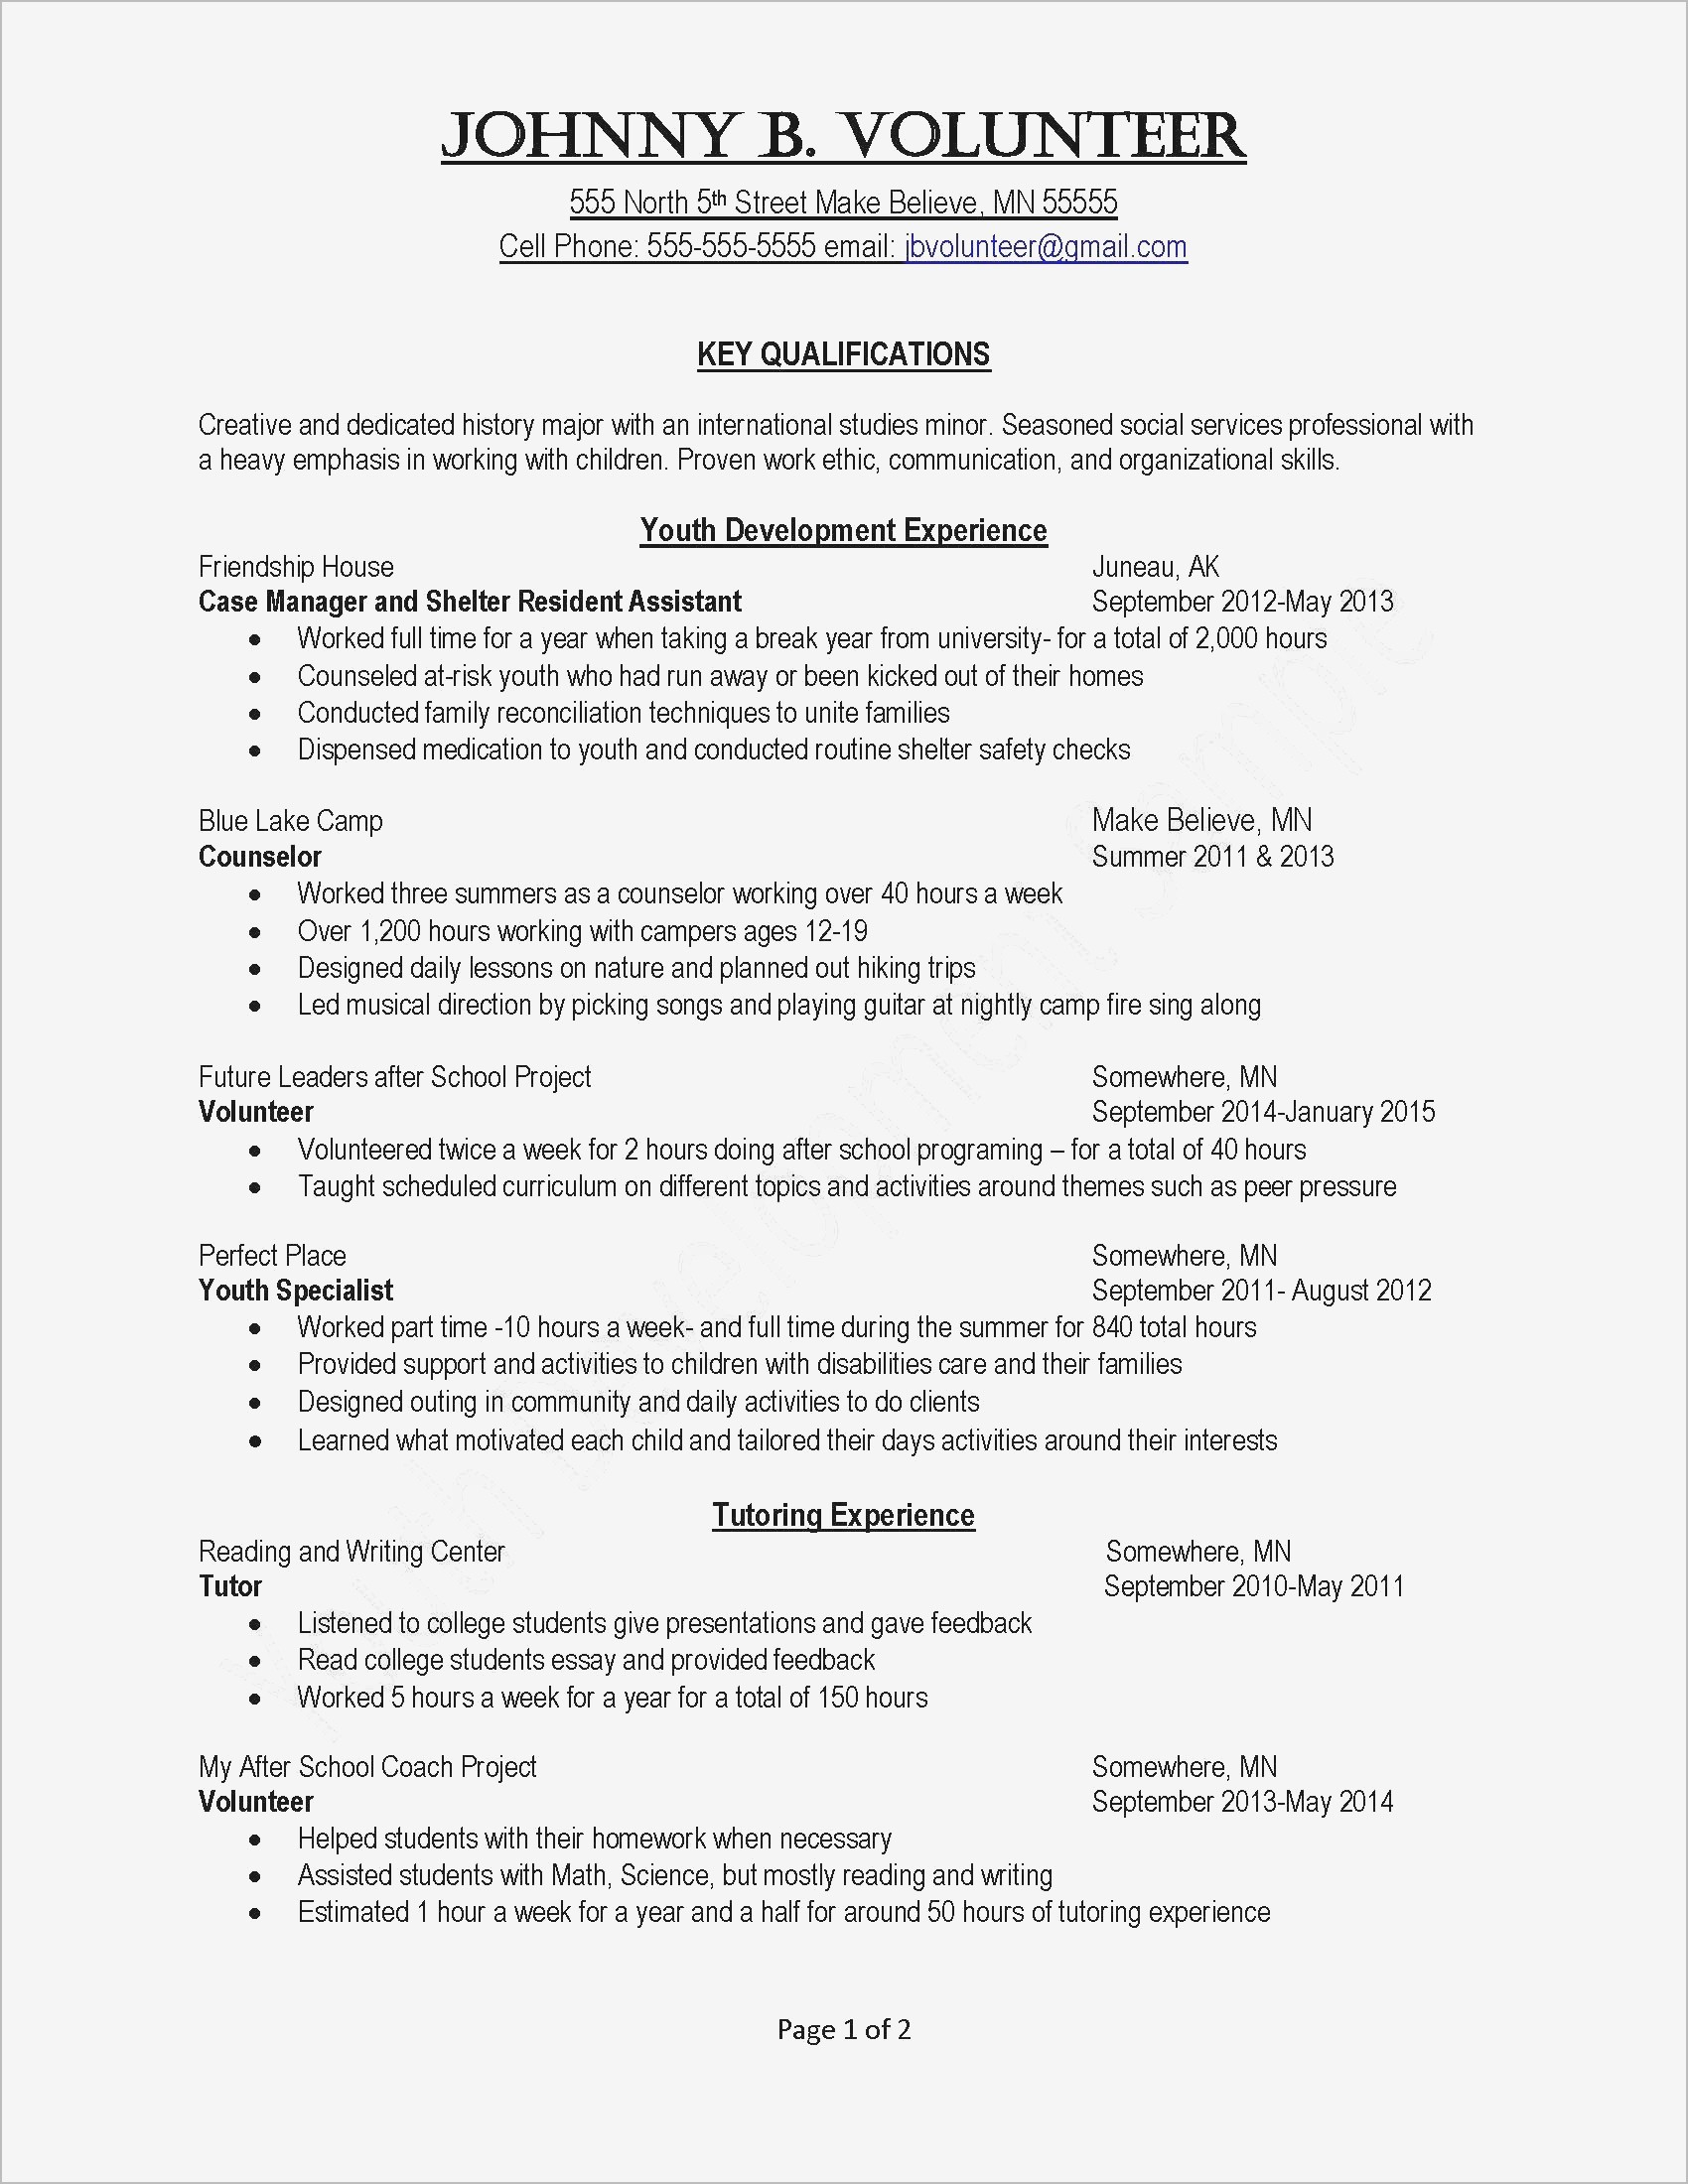 Template for Community Service Hours Letter - How to Write A Cover Letter for Volunteer Work